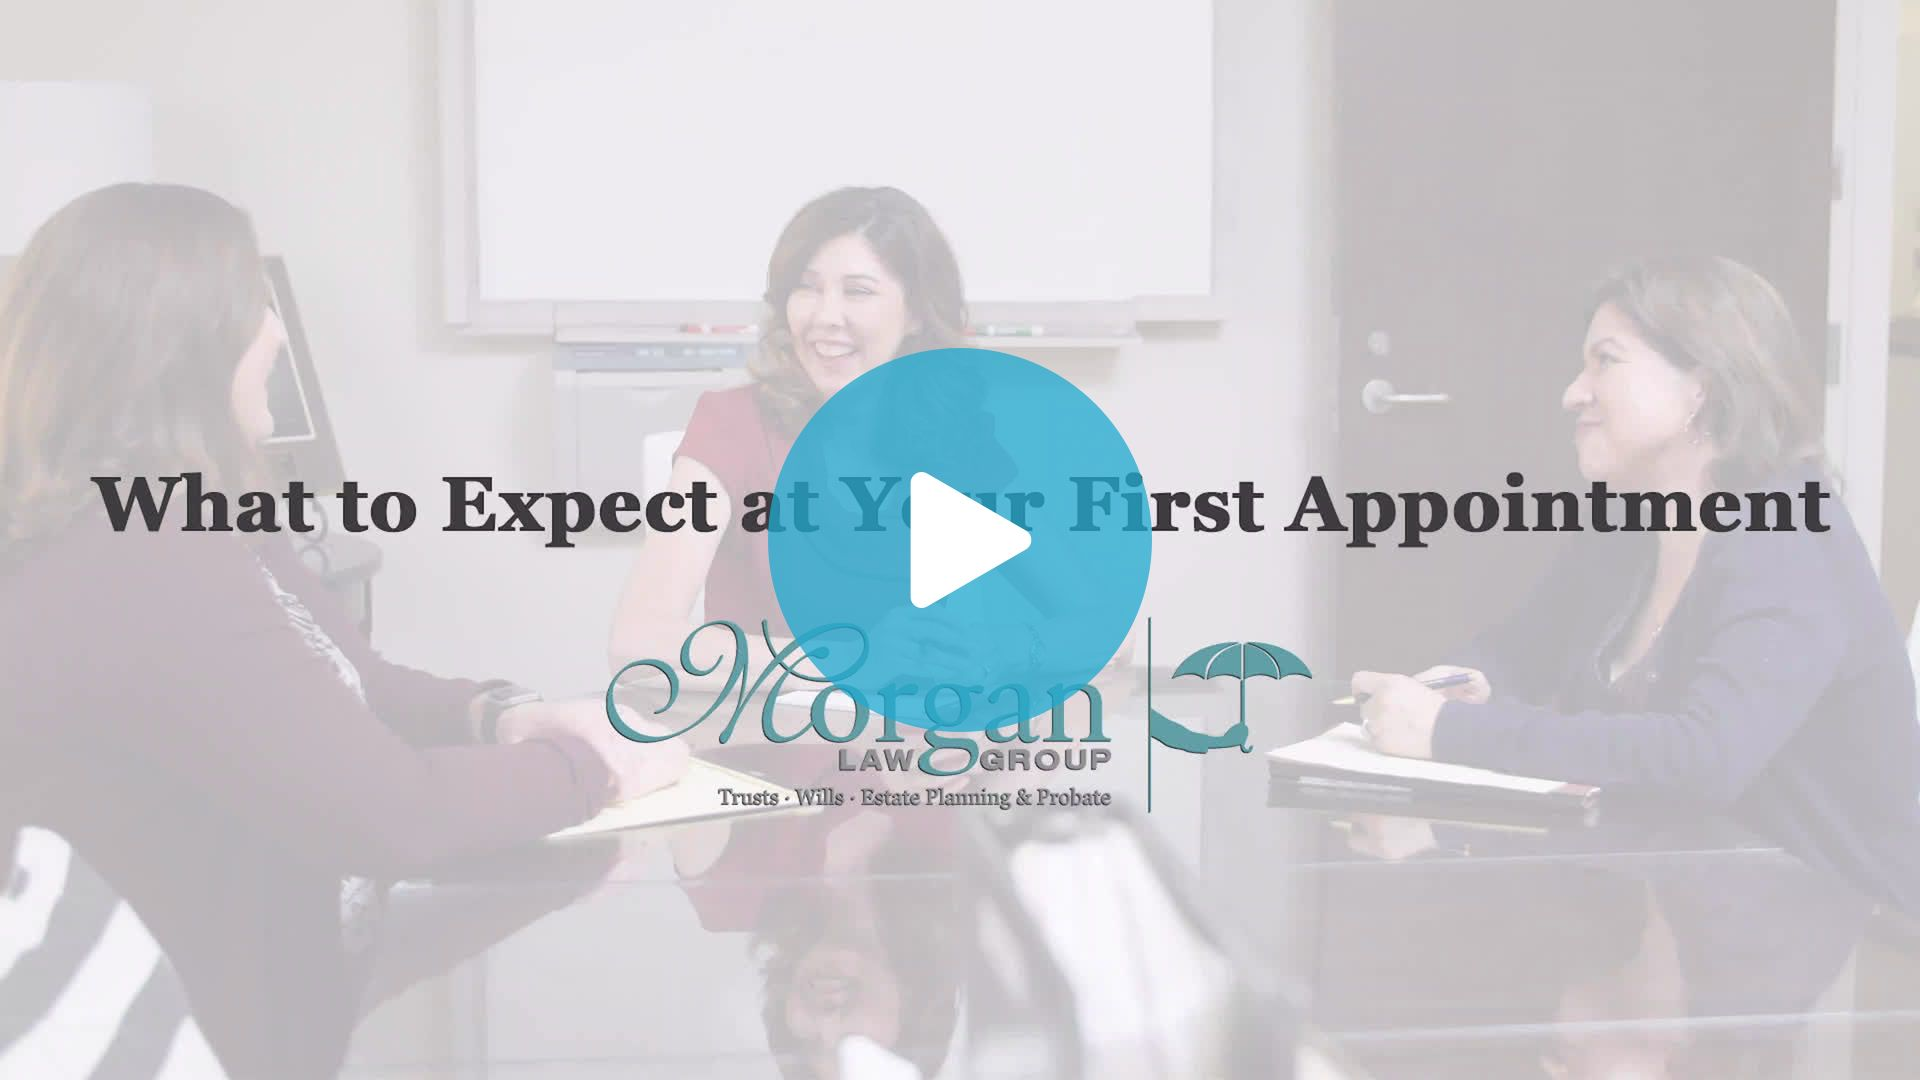 11.-What-To-expect-at-your-first-appointment